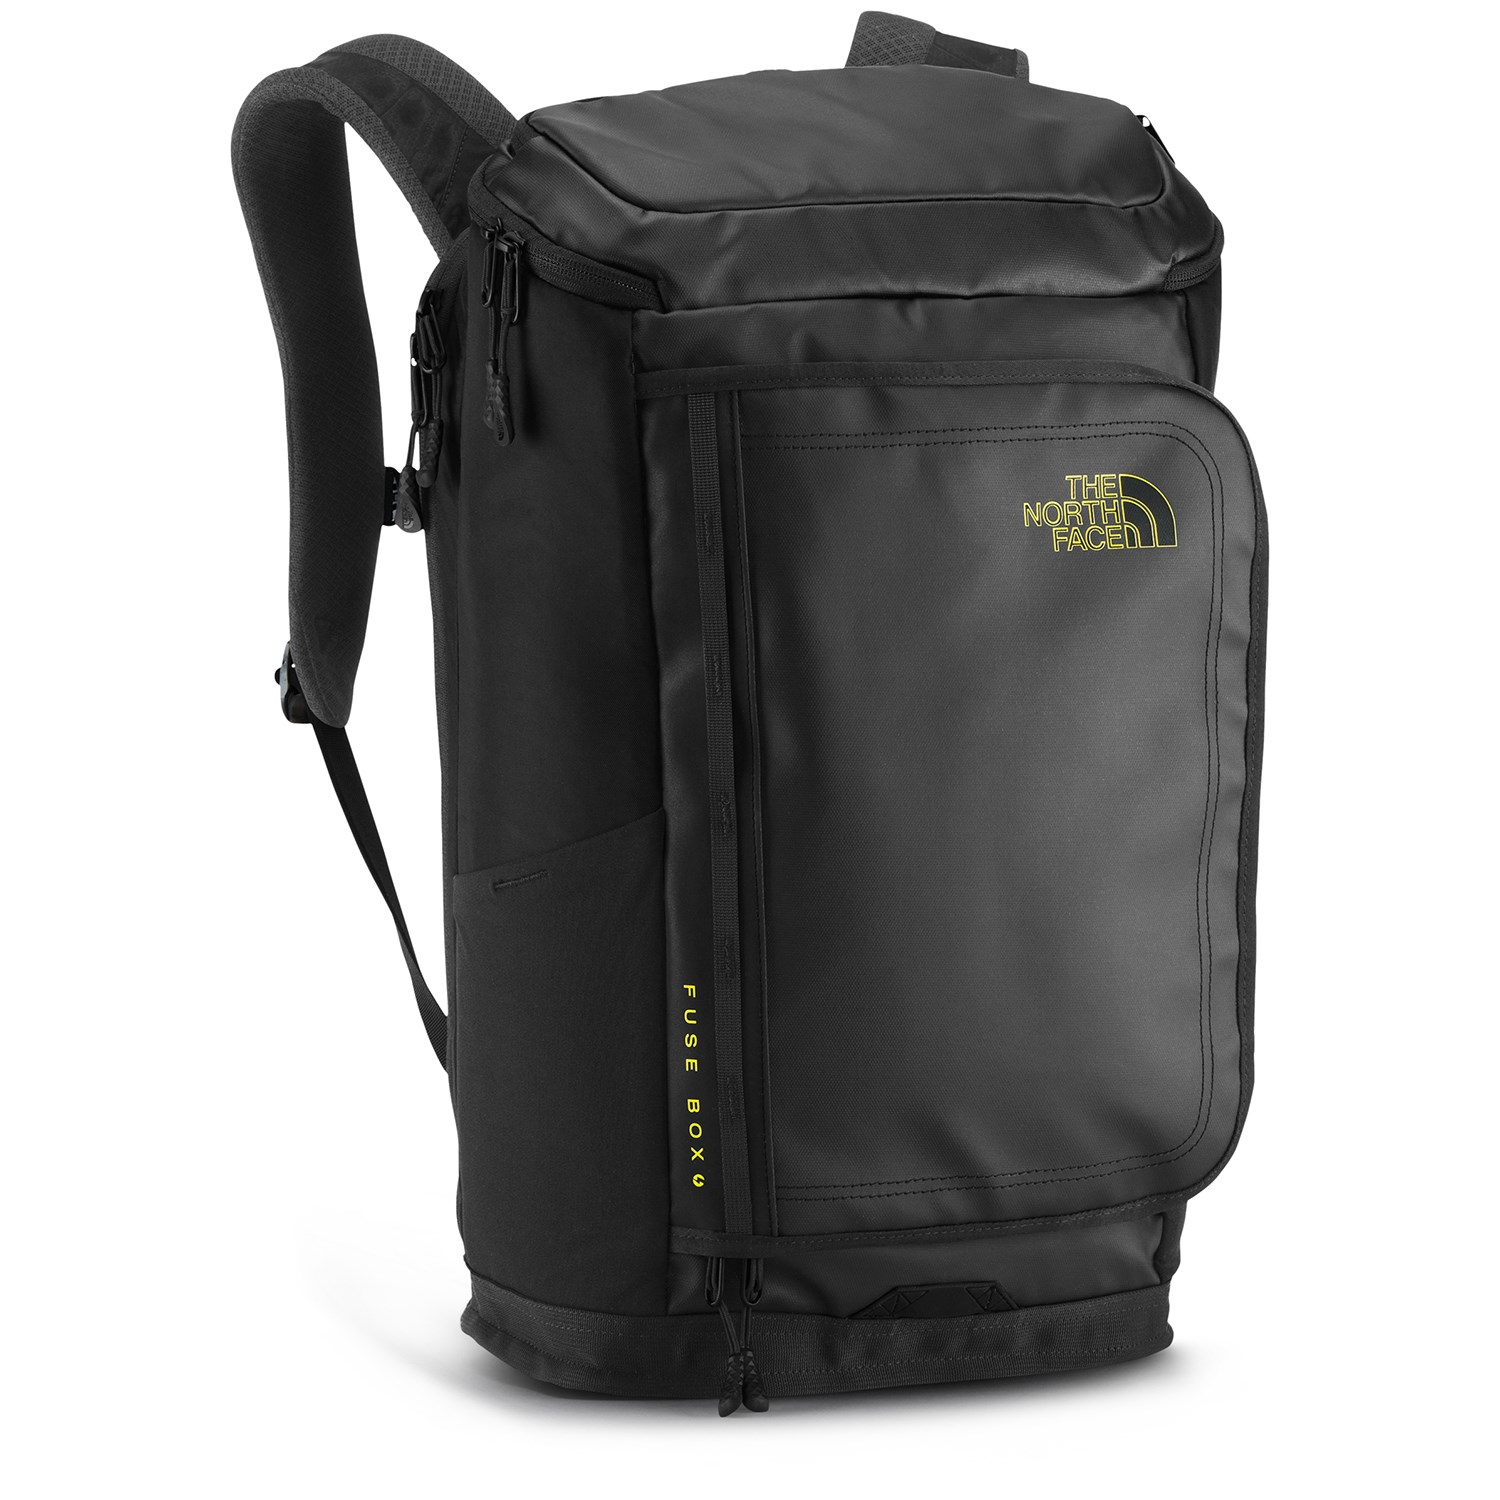 fuse box black the north face fuse box charged backpack evo  north face fuse box charged backpack